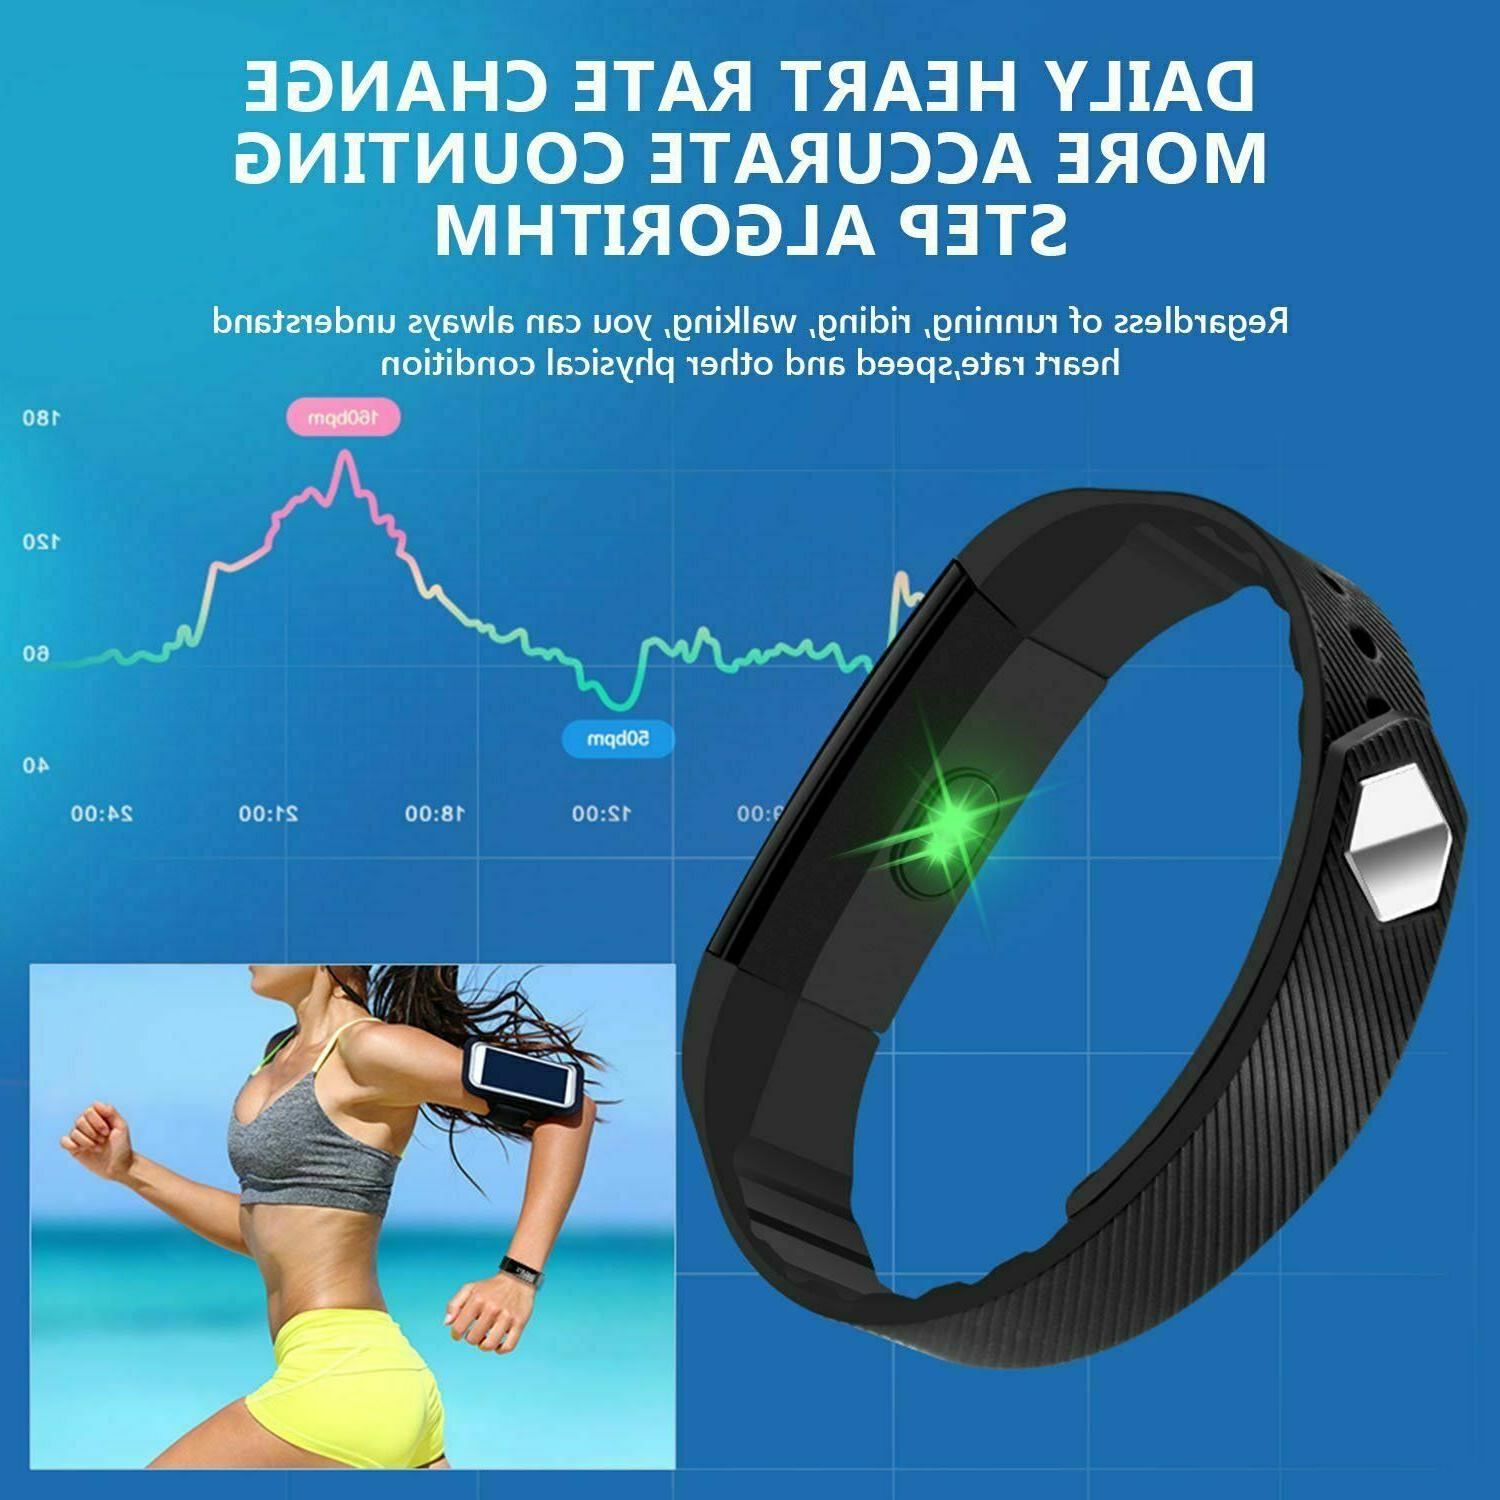 New Fit***bit Sports Life-Waterproof Smart Watch